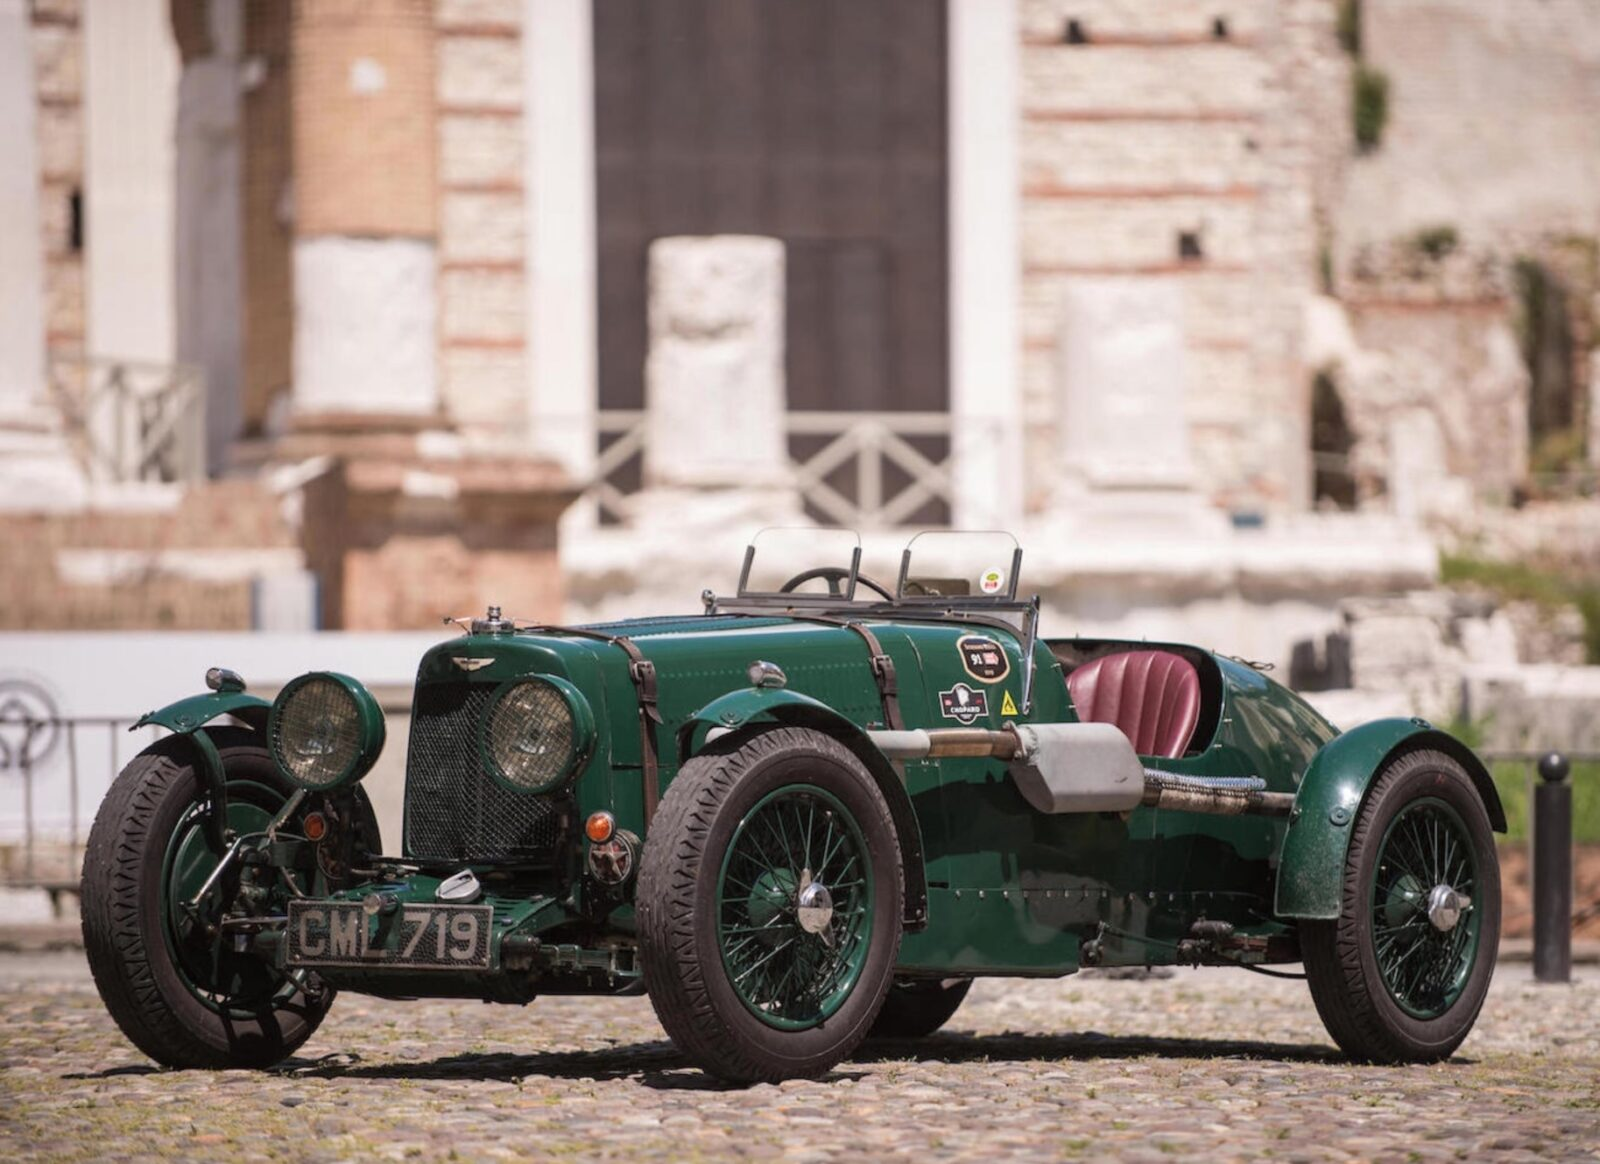 aston martin le mans ulster 1 1 1600x1164 - 1935 Aston Martin Ulster Le Mans Works Racer